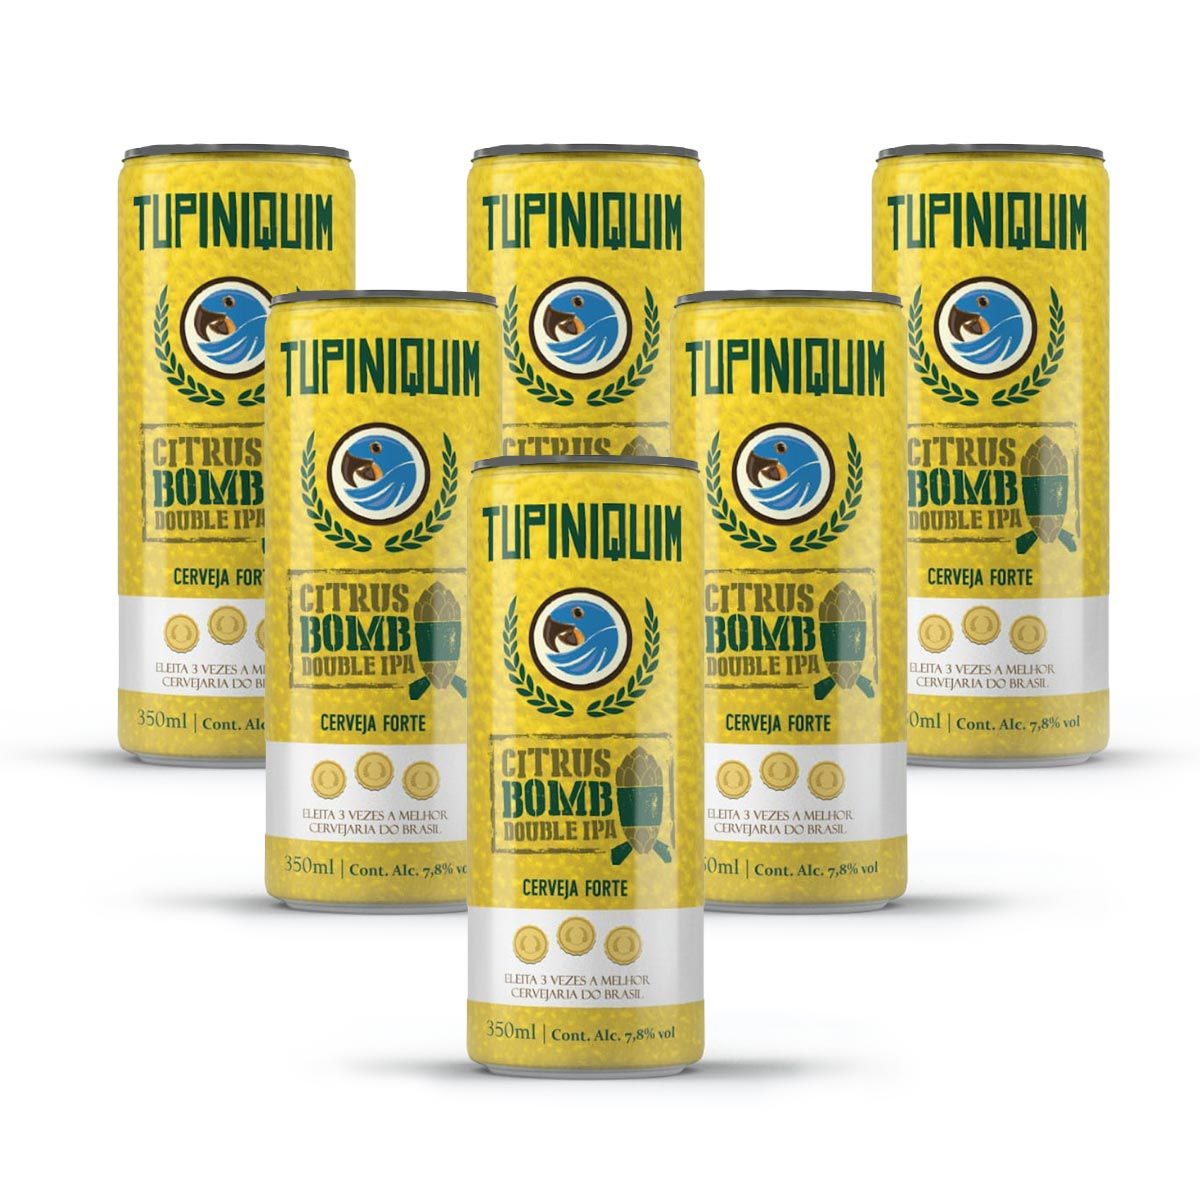 Pack Tupiniquim Citrus Bomb Double IPA 6 cervejas 350ml